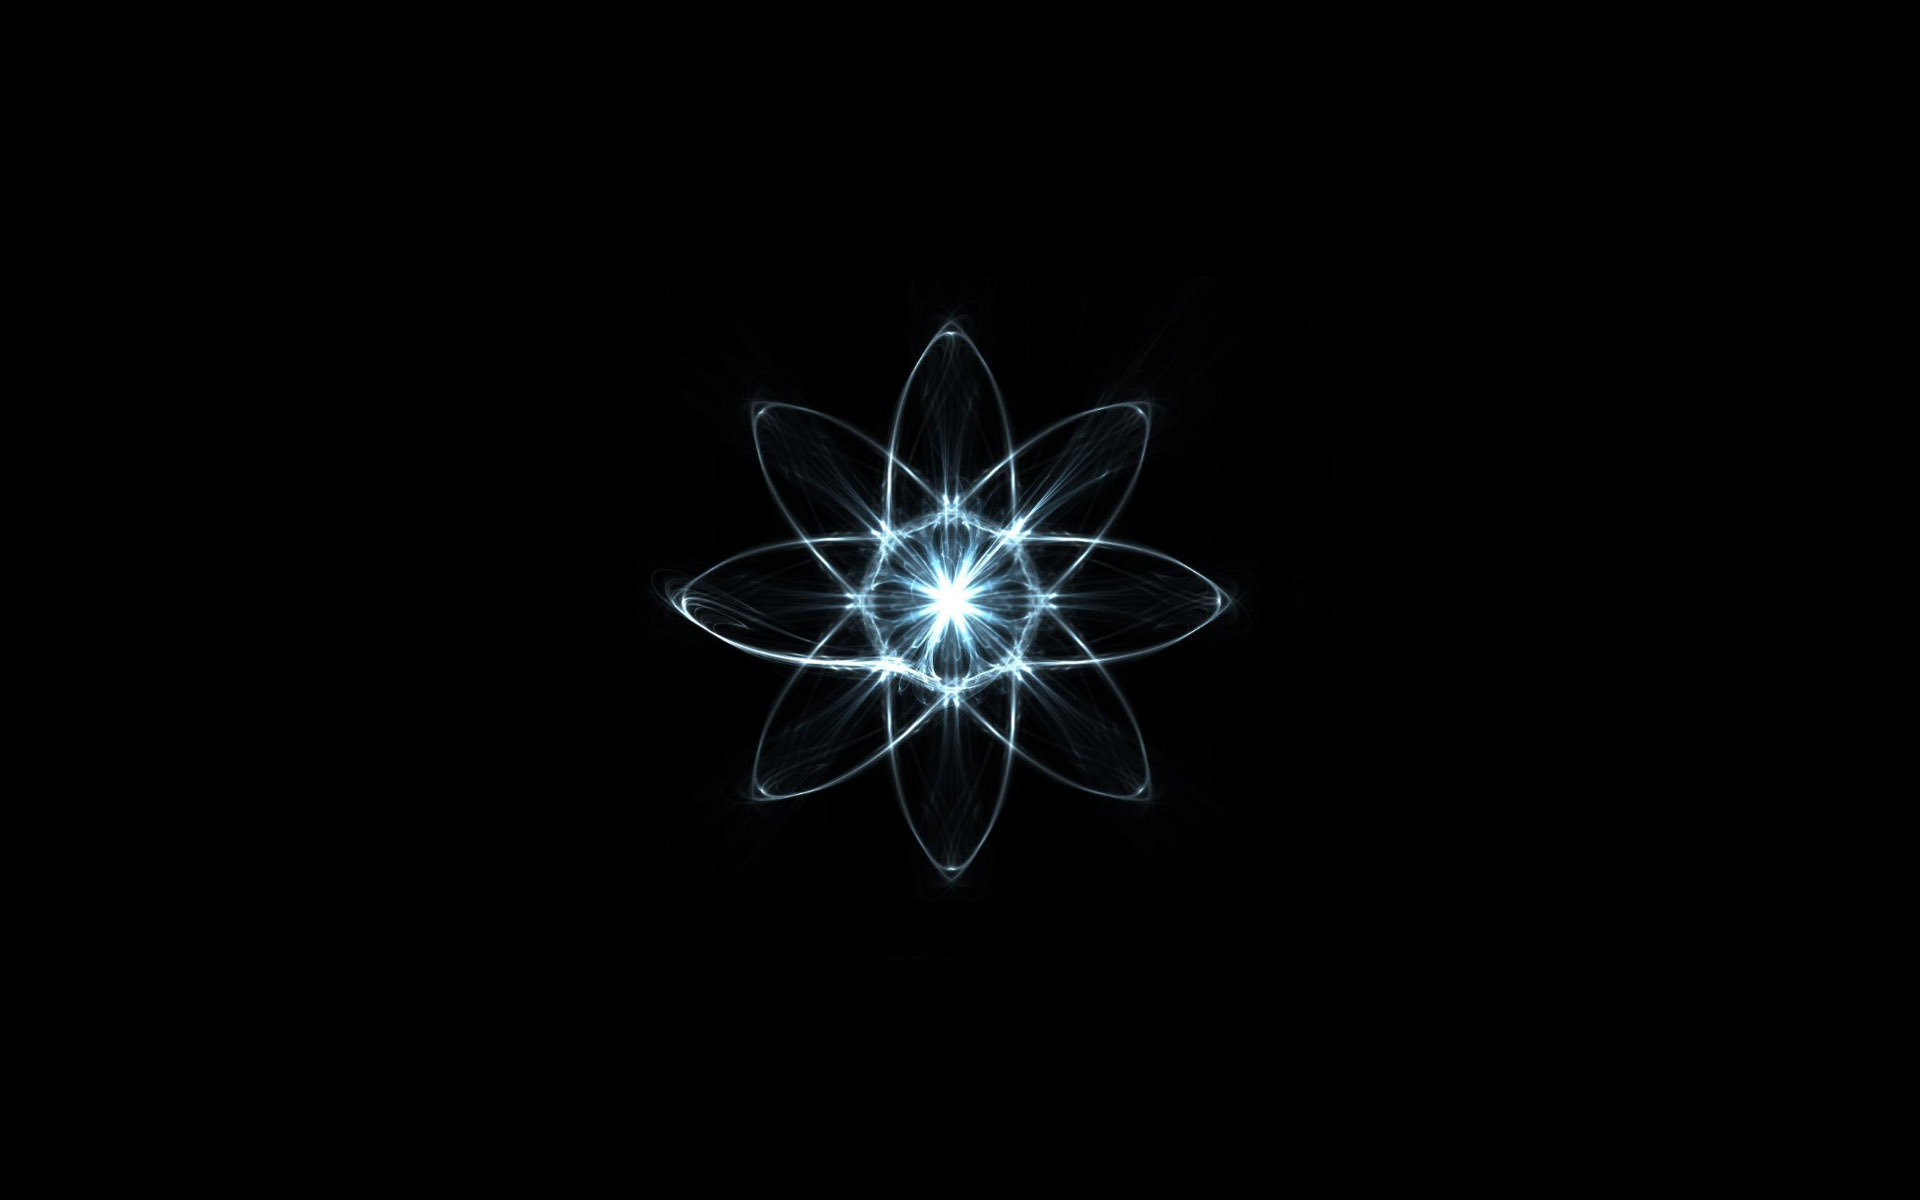 interesting atom hdq images collection, hd widescreen wallpapers